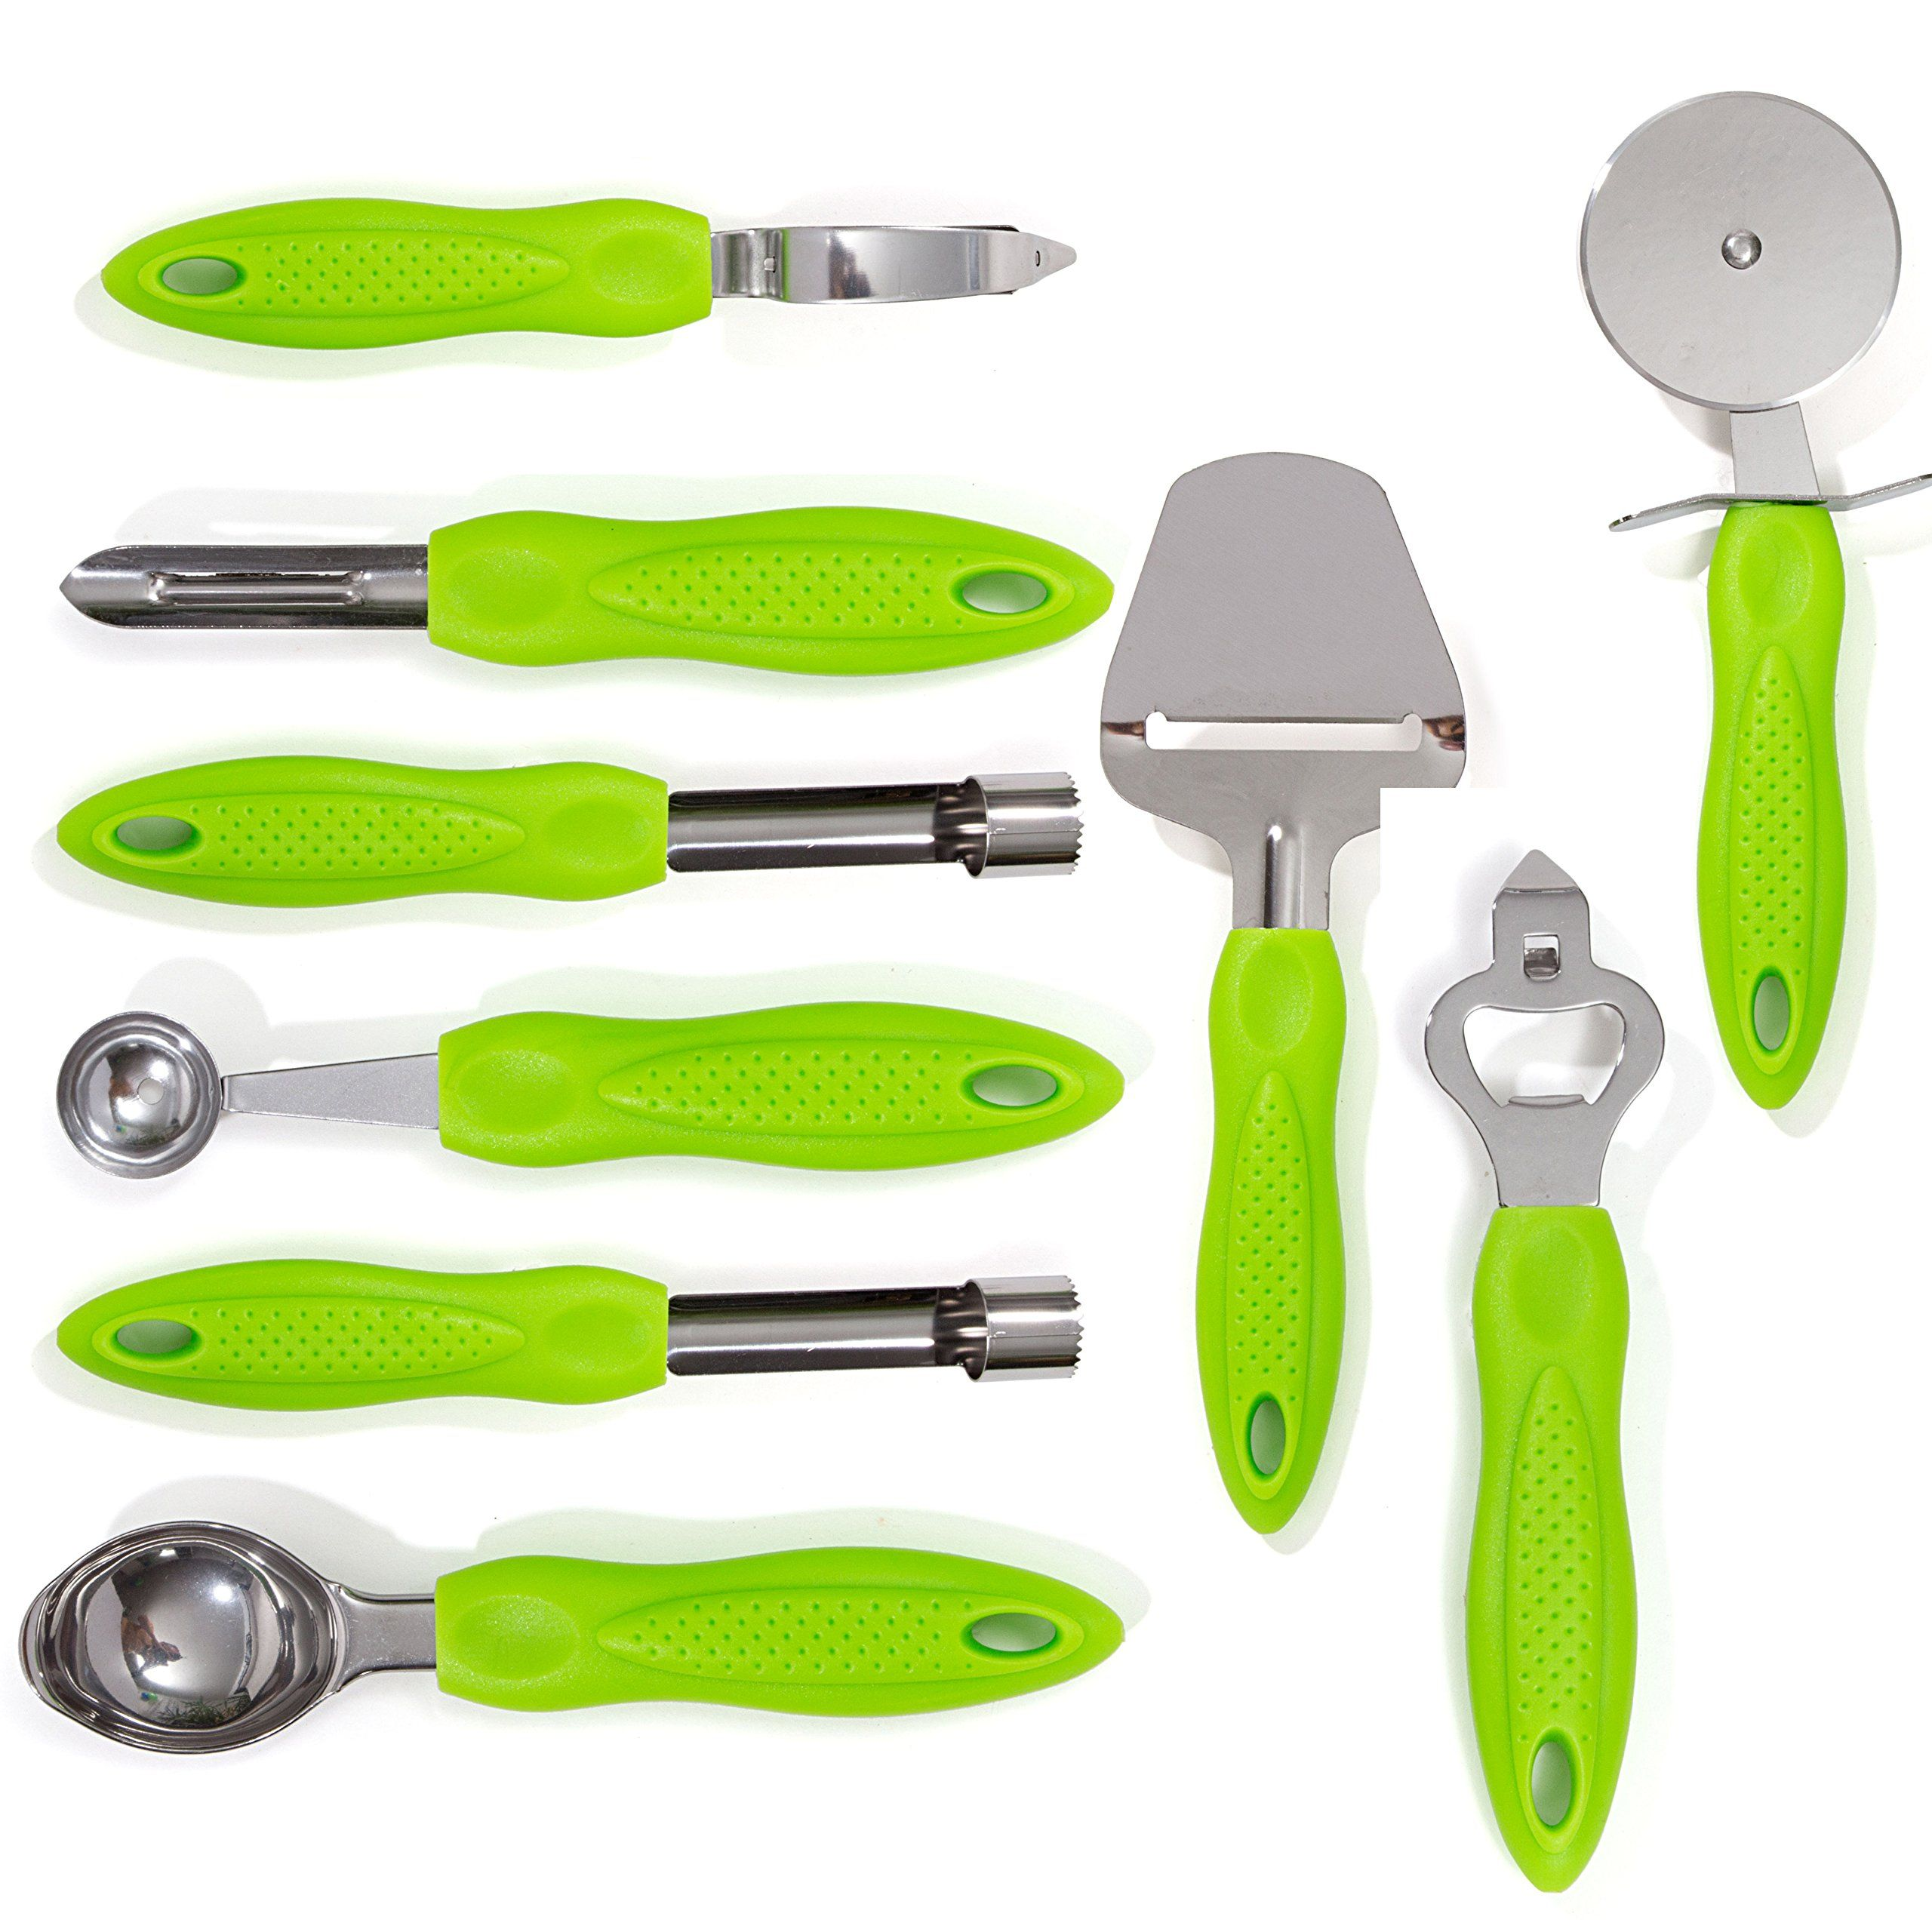 Hullr 9piece Stainless Steel Kitchen Gadgets Tools Set Pizza Cutter Can Opener Peeler Ice Cream Scoop Melon Stainless Steel Kitchen Kitchen Gadgets Utensil Set